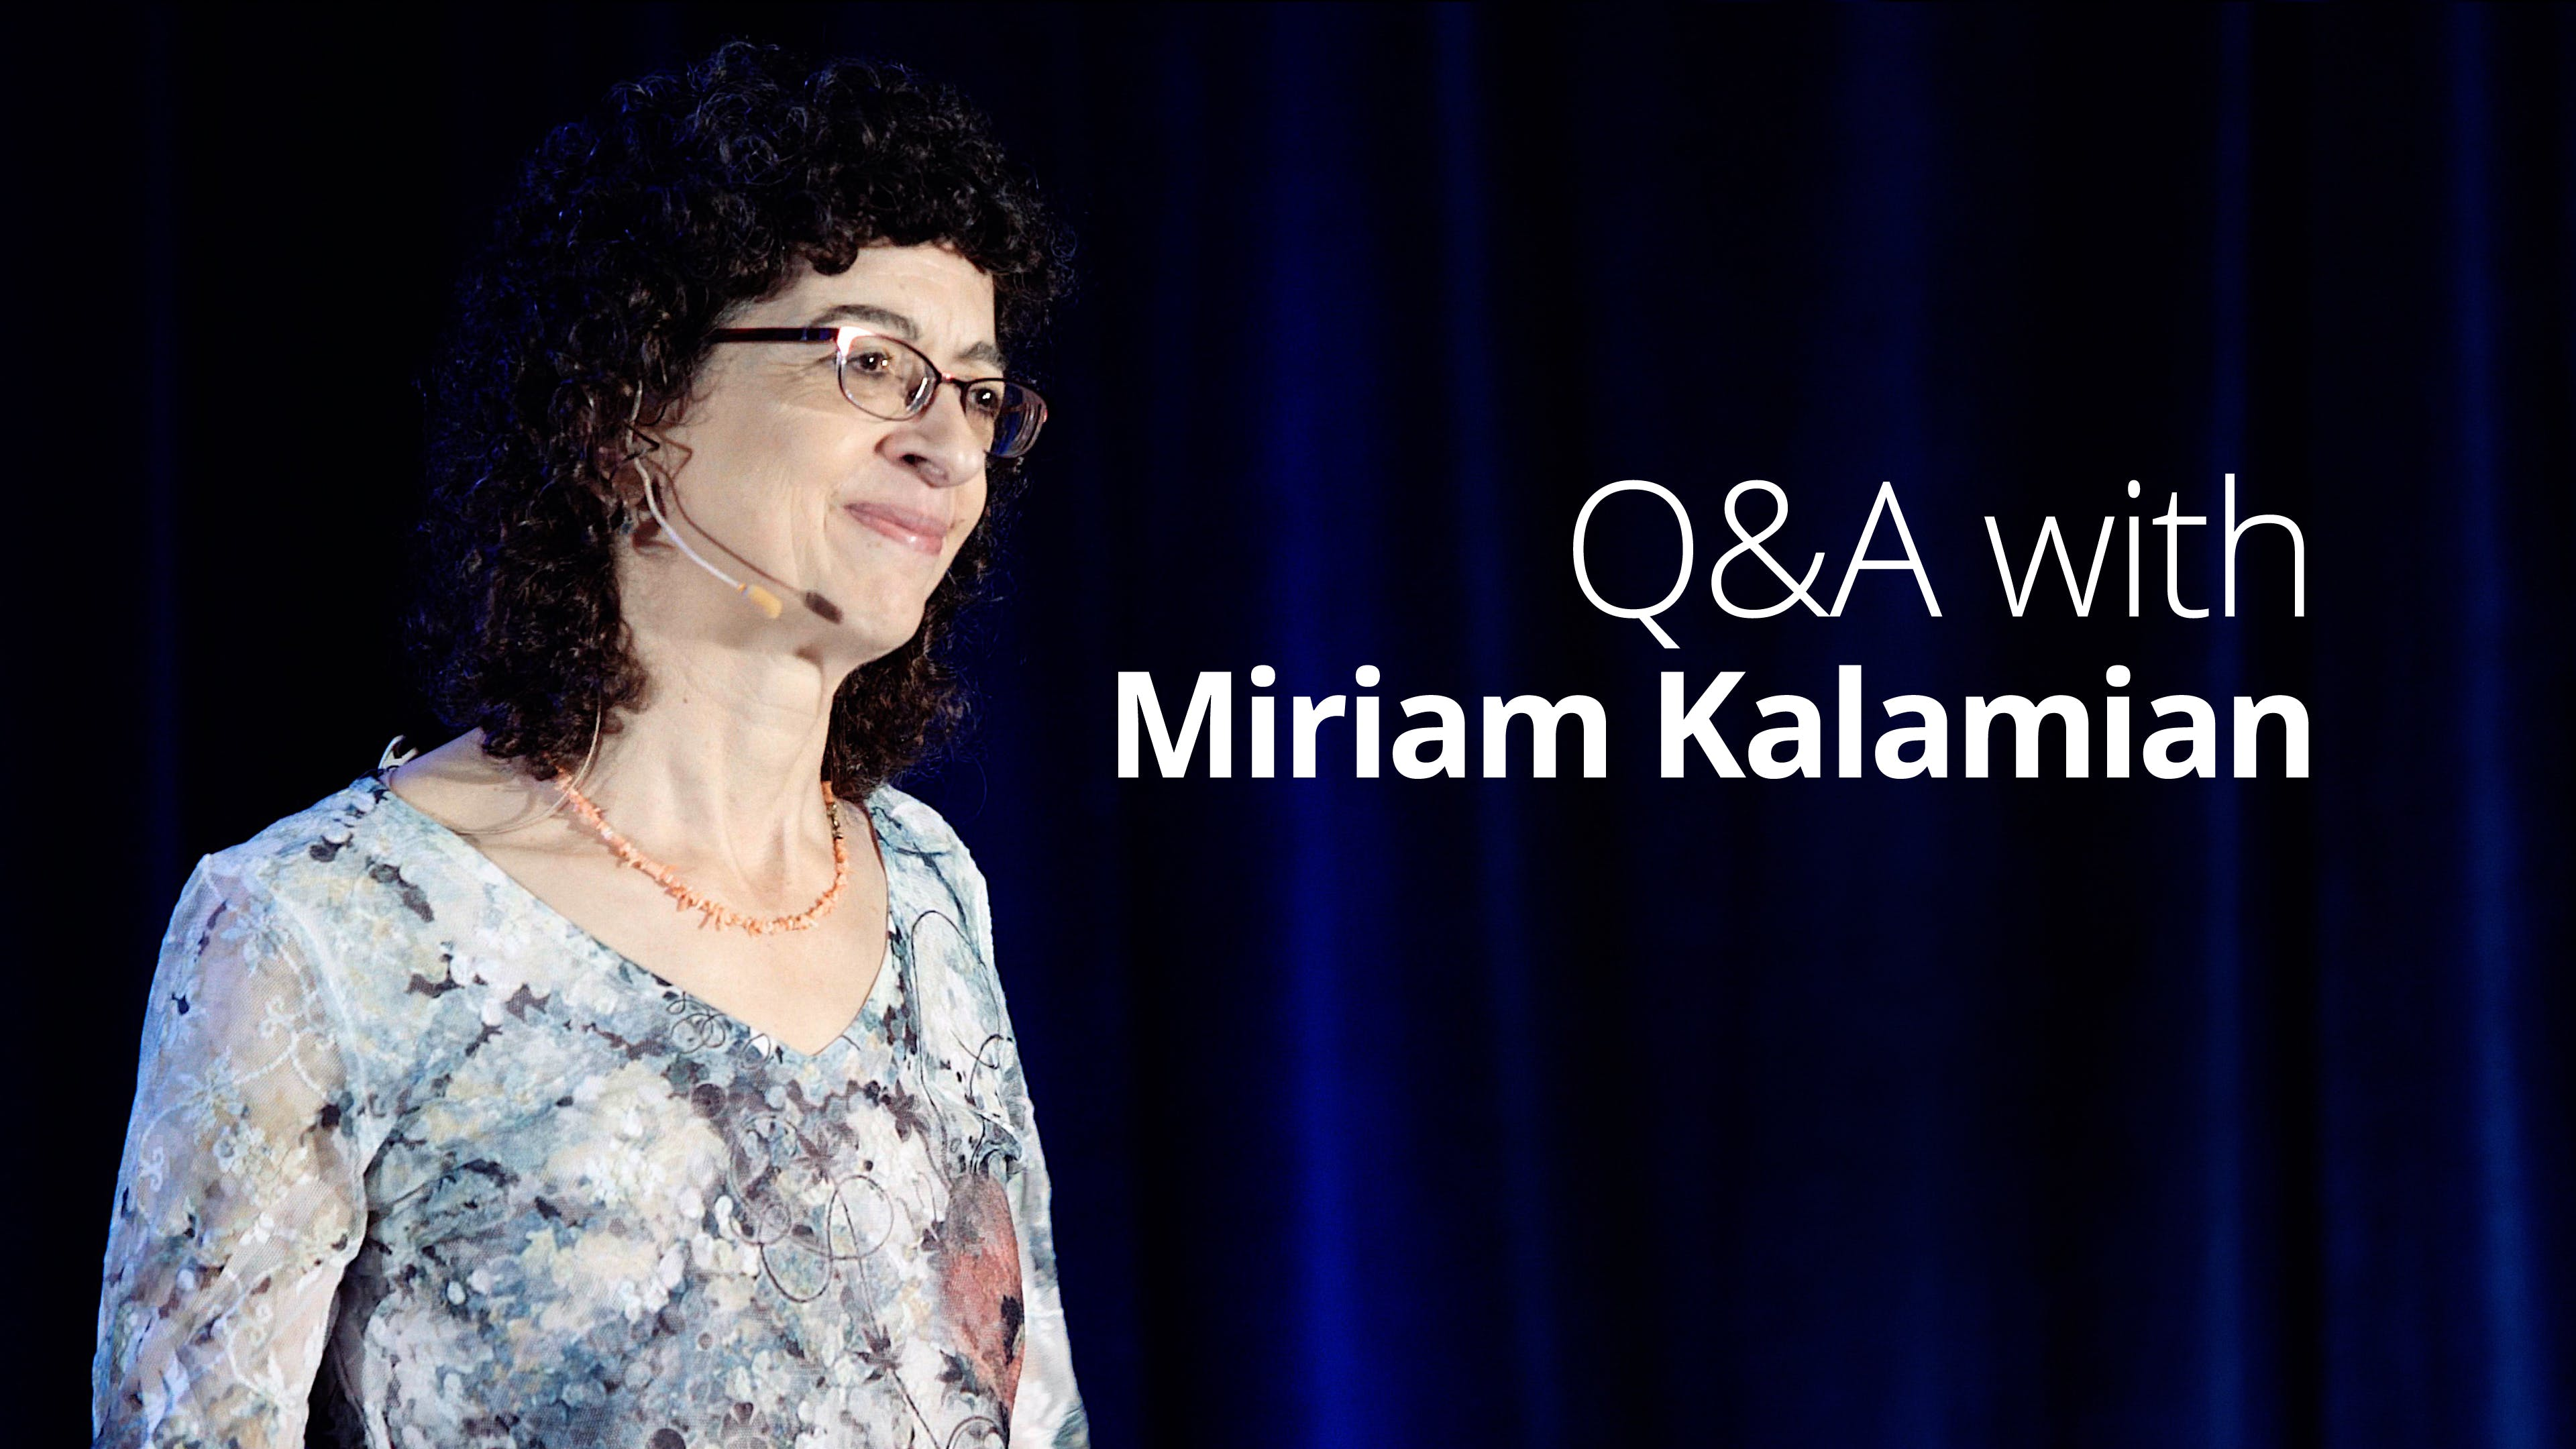 Q&A with Miriam Kalamian